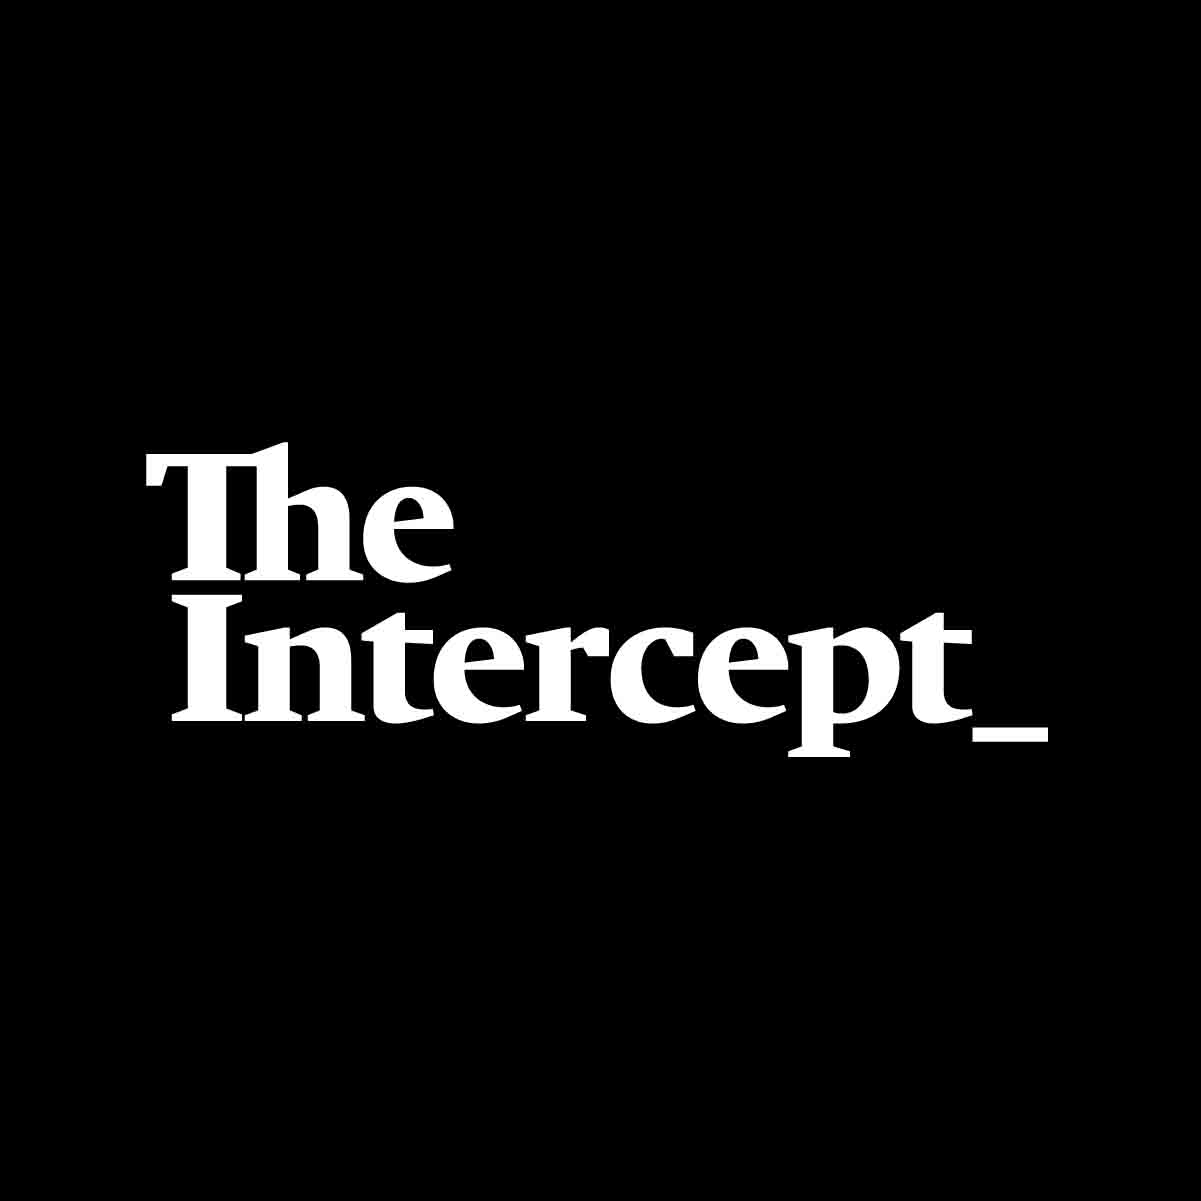 the-intercept-logo.jpg